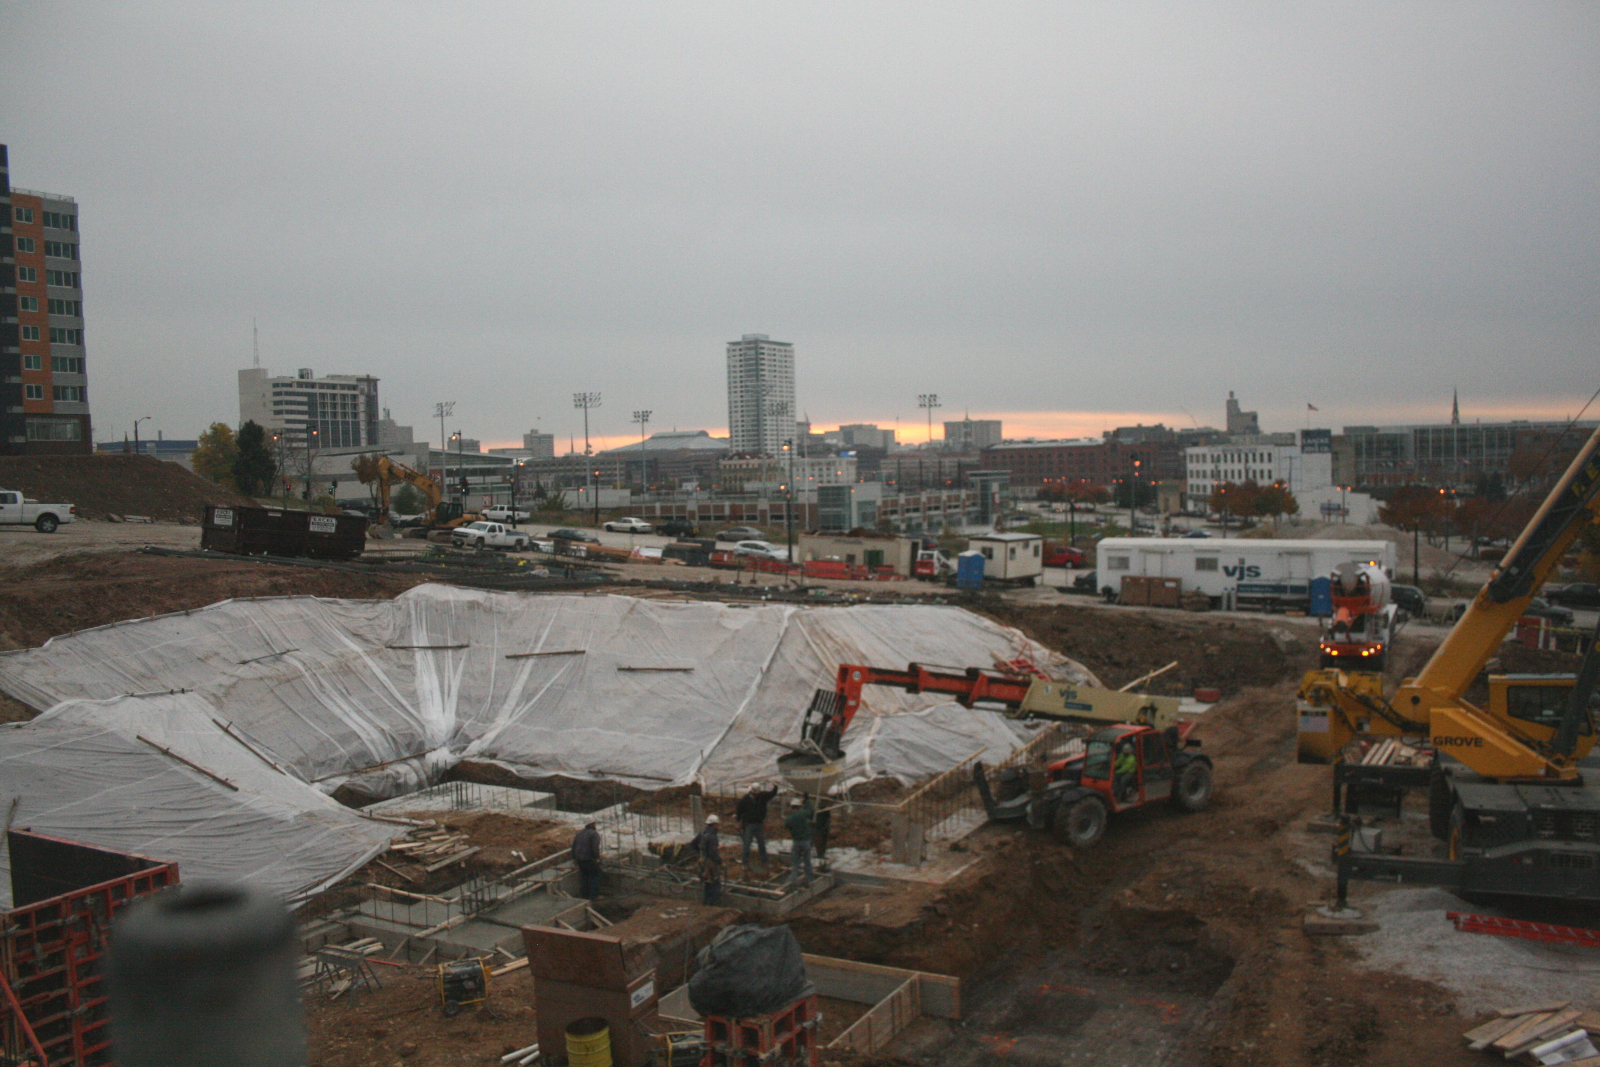 A busy construction site.